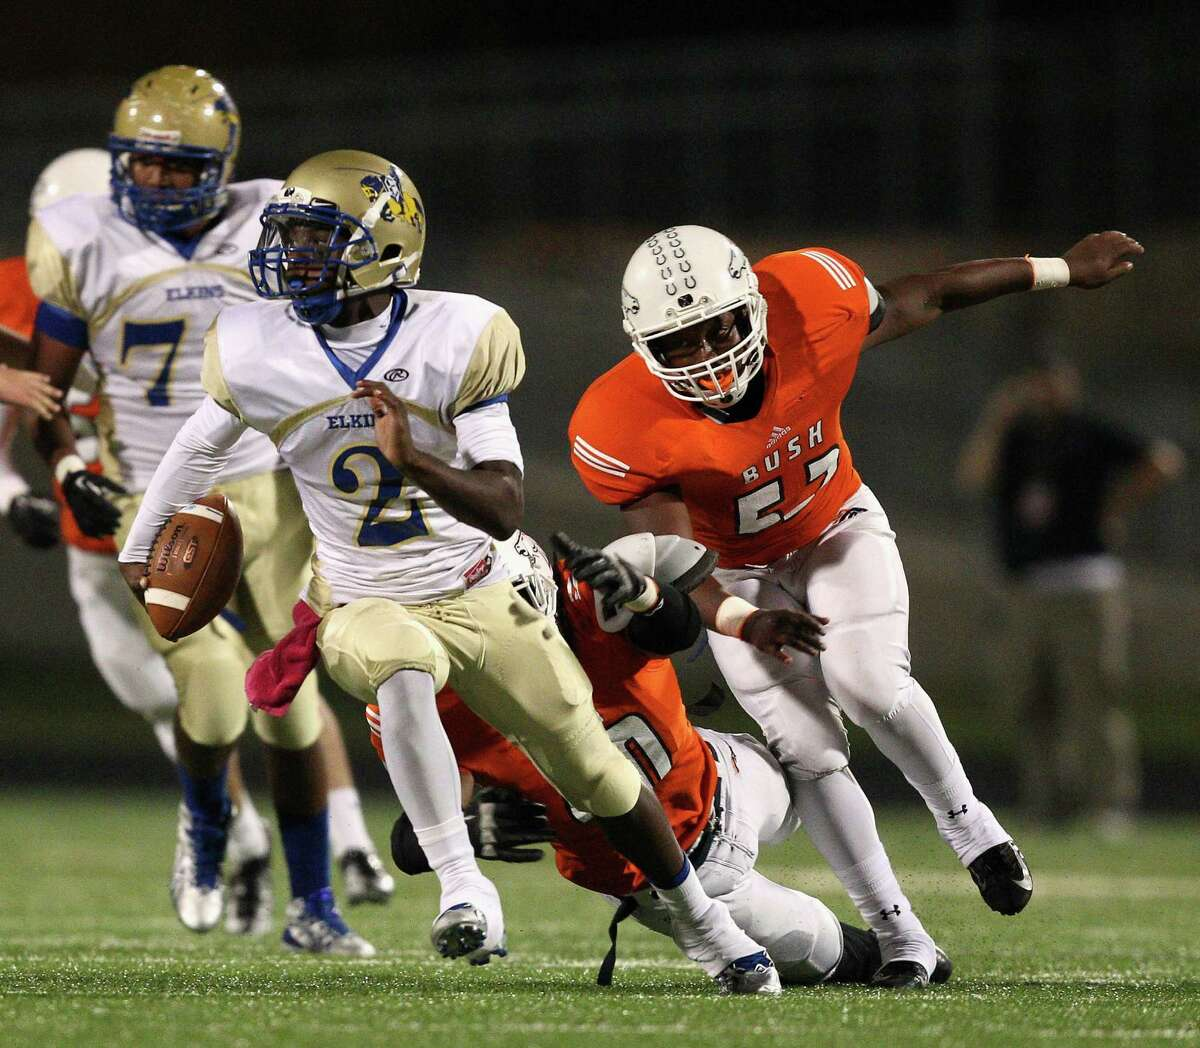 Elkins quarterback Jonathan Giles will likely be playing in a new Class 5A district next year.